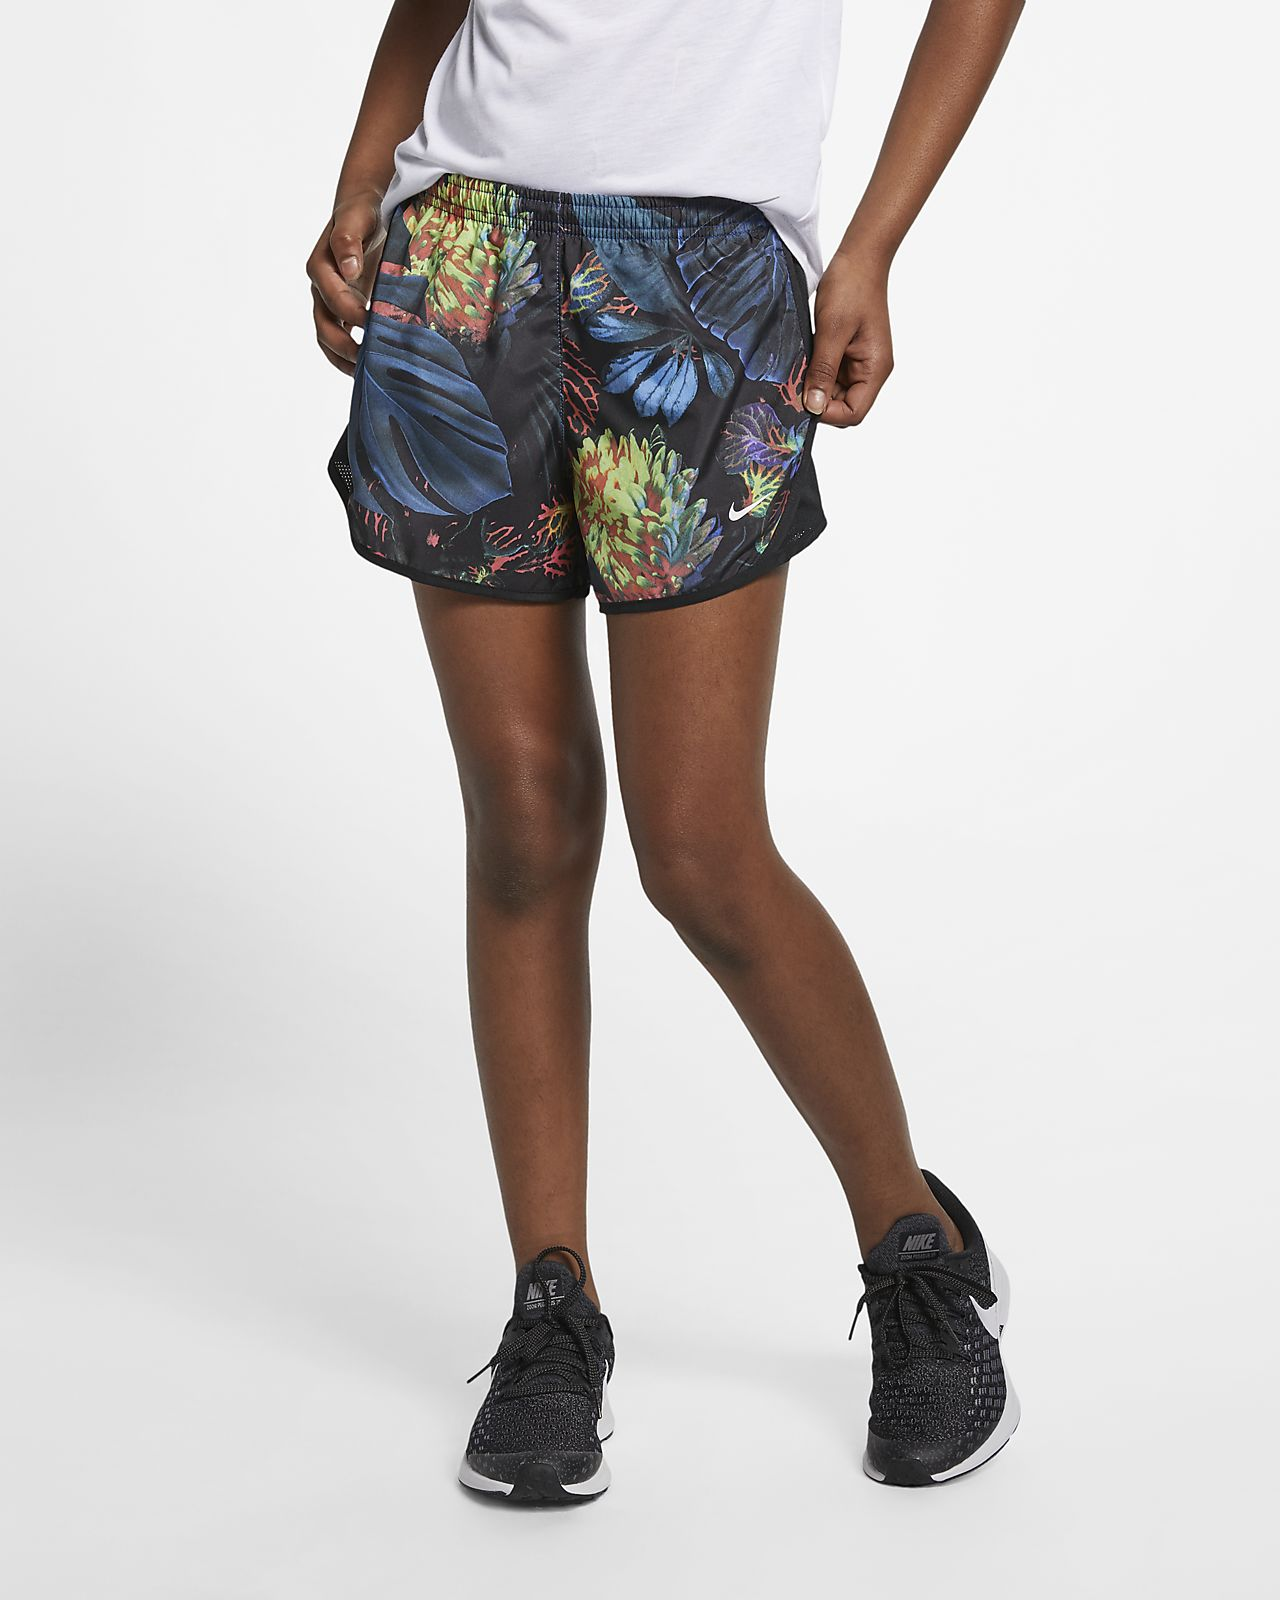 timeless design d9f9f 9d914 ... Nike Dri-FIT Tempo Big Kids  (Girls ) Printed Running Shorts